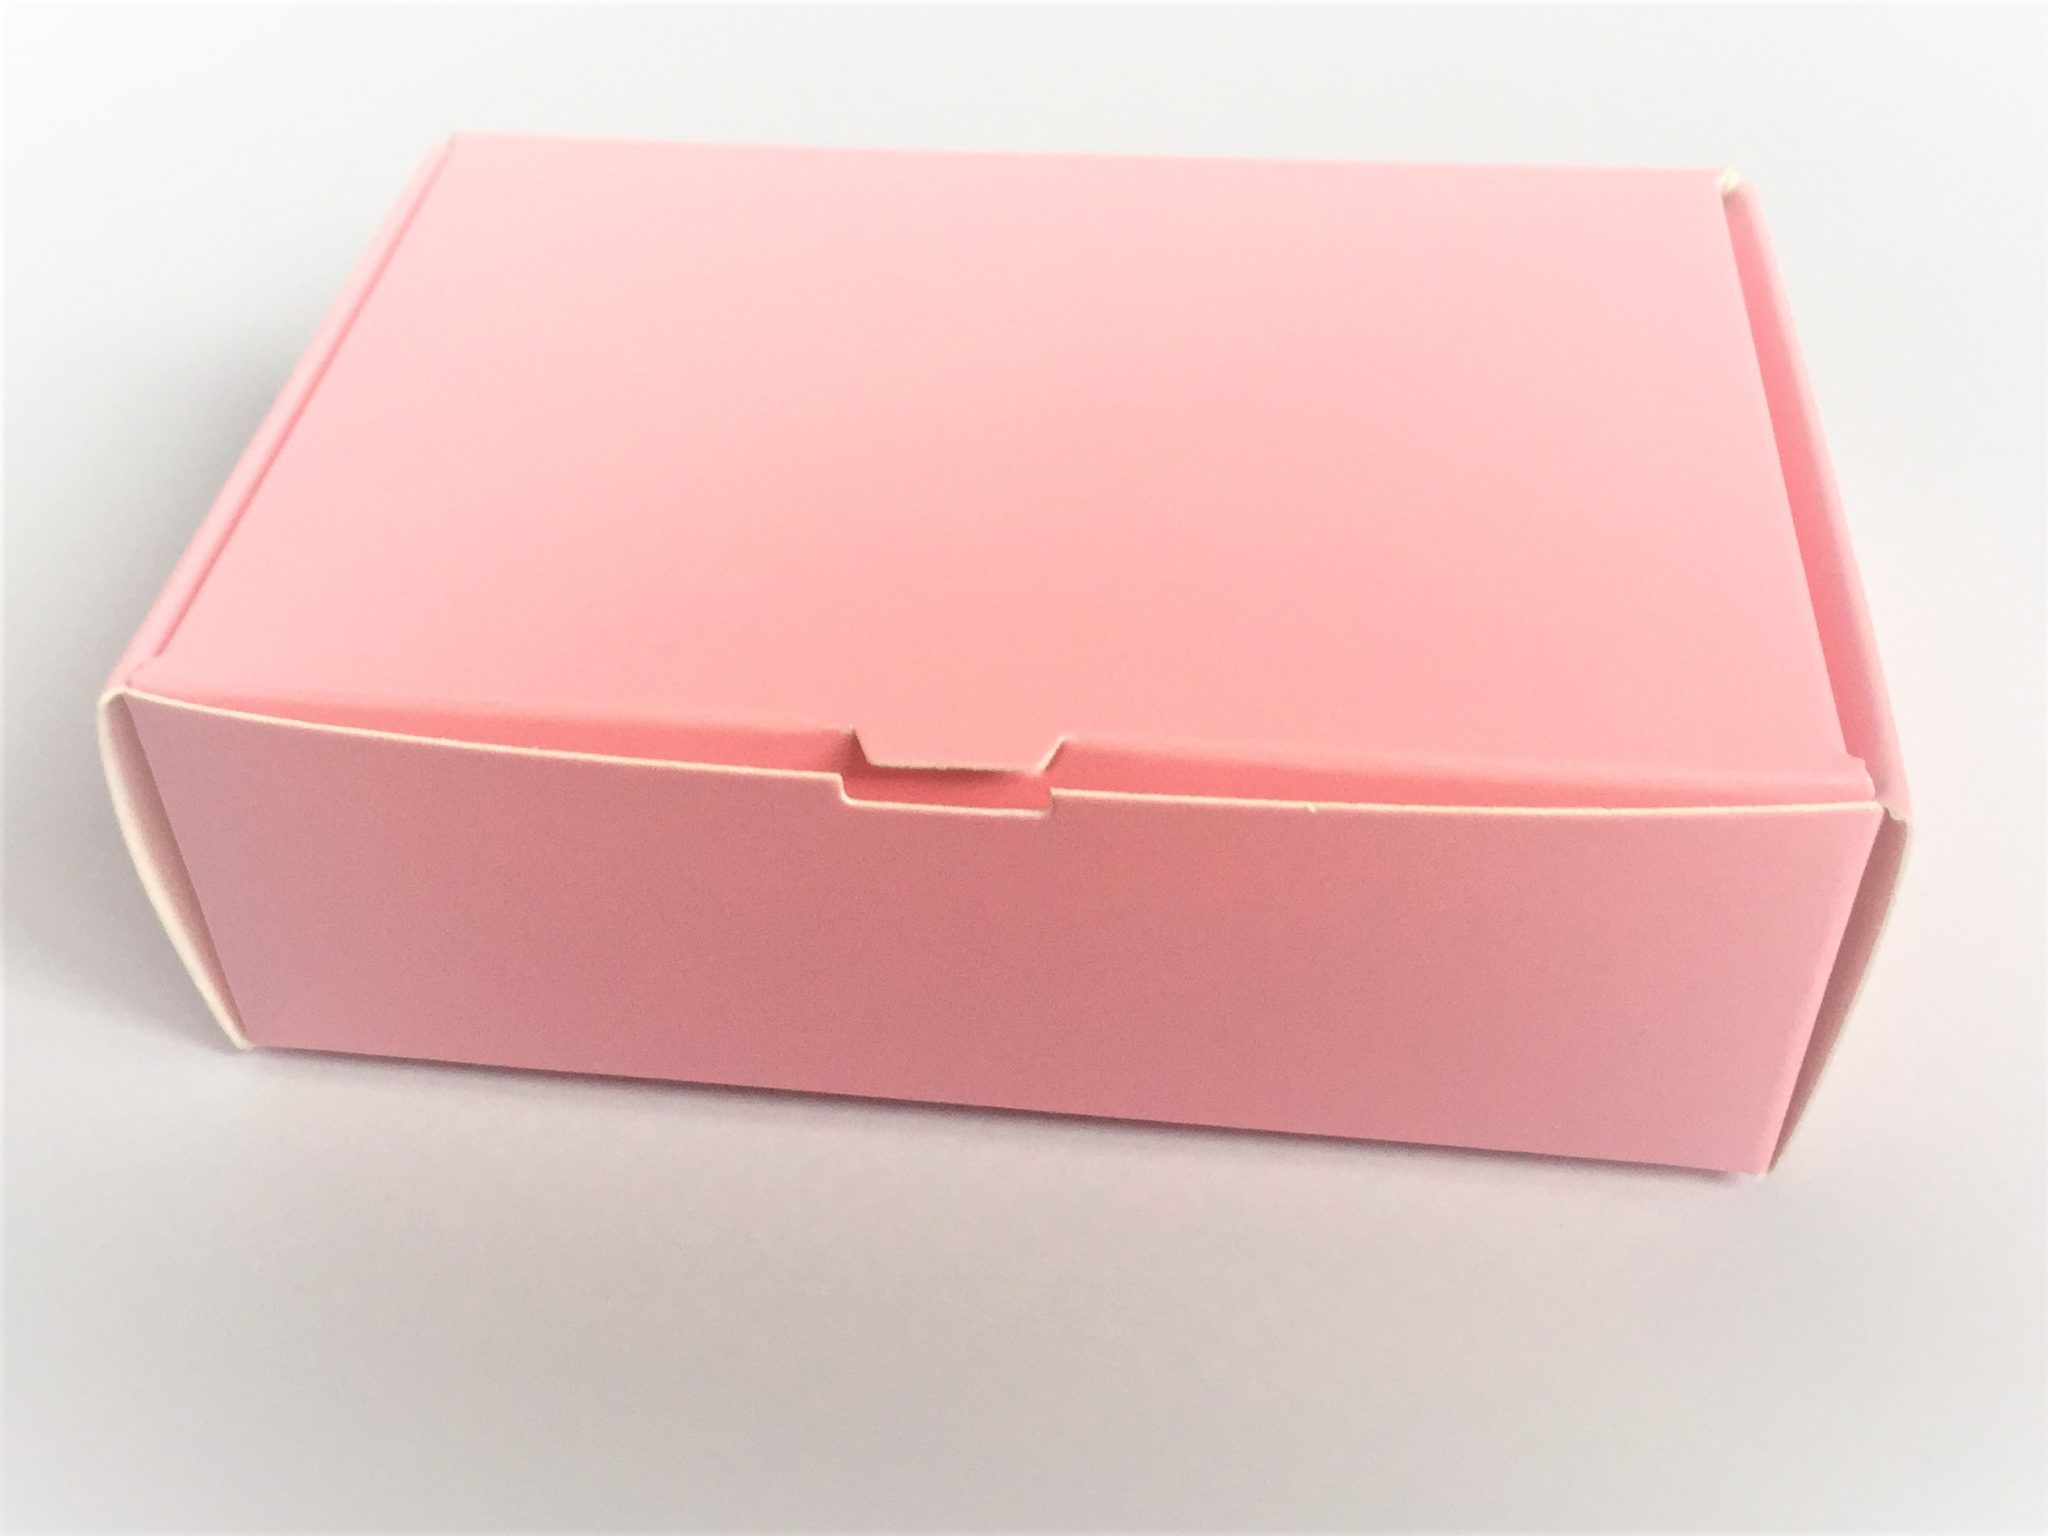 Sample Cake Slice Box in Pink